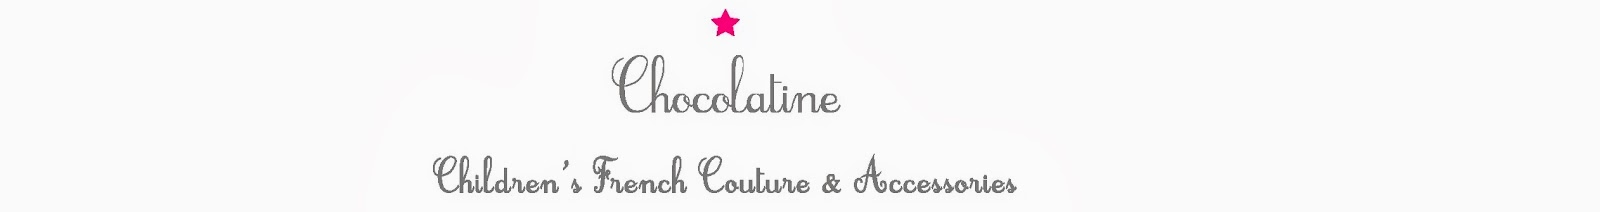 Chocolatine Boutique